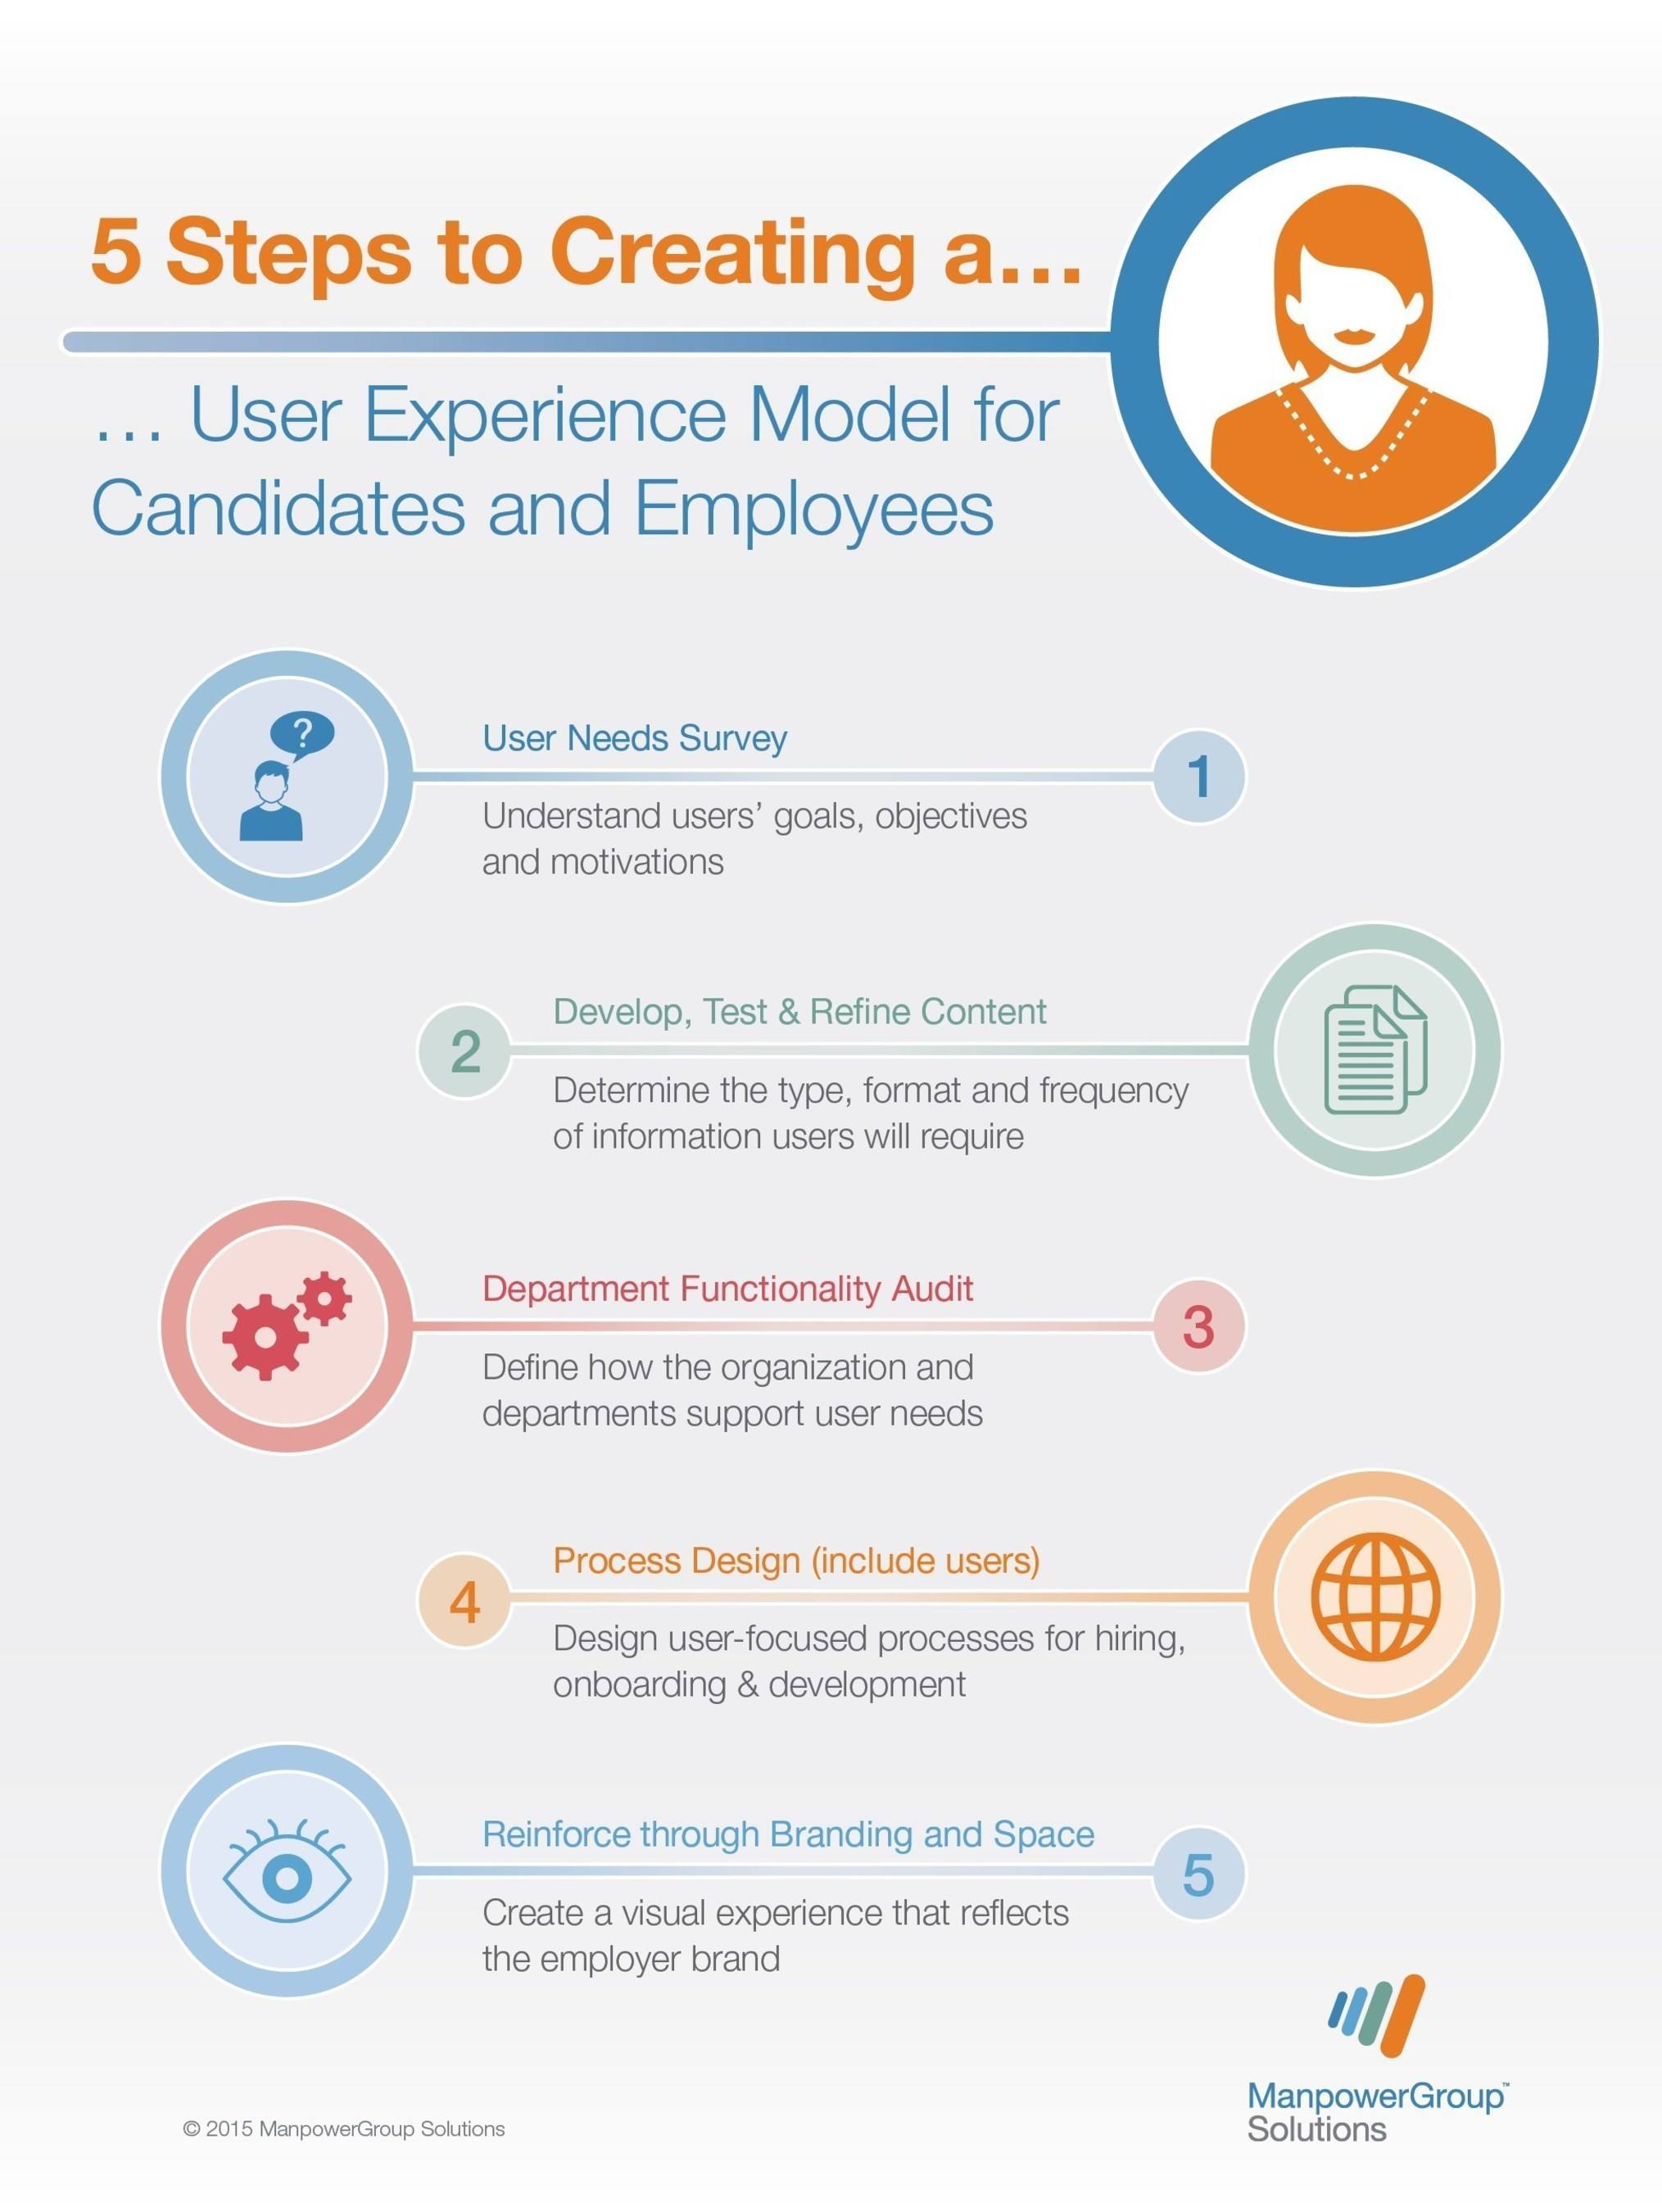 As traditional retention incentives become unsustainable, organizations are looking for new ways to attract and retain the best talent. ManpowerGroup Solutions provides a fresh perspective on retention, using a method most commonly found in product and service development: user experience modeling. This approach places employee motivations, interests and behaviors at the heart of organizational culture.